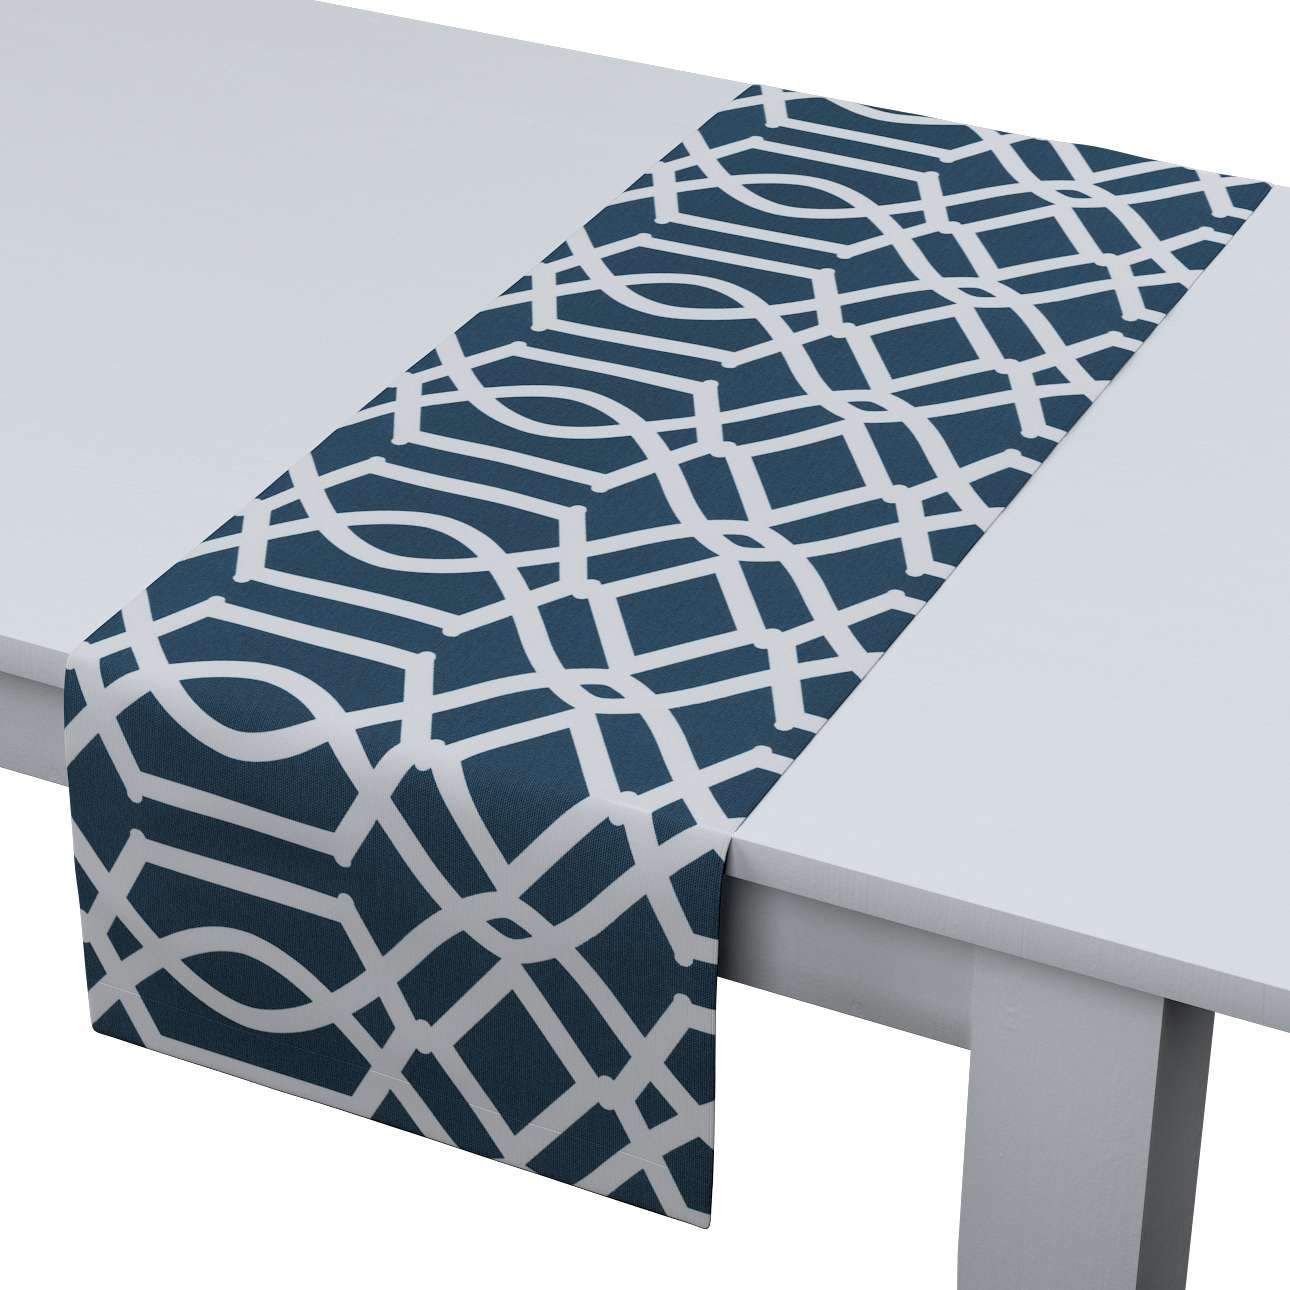 Table runner in collection Comic Book & Geo Prints, fabric: 135-10